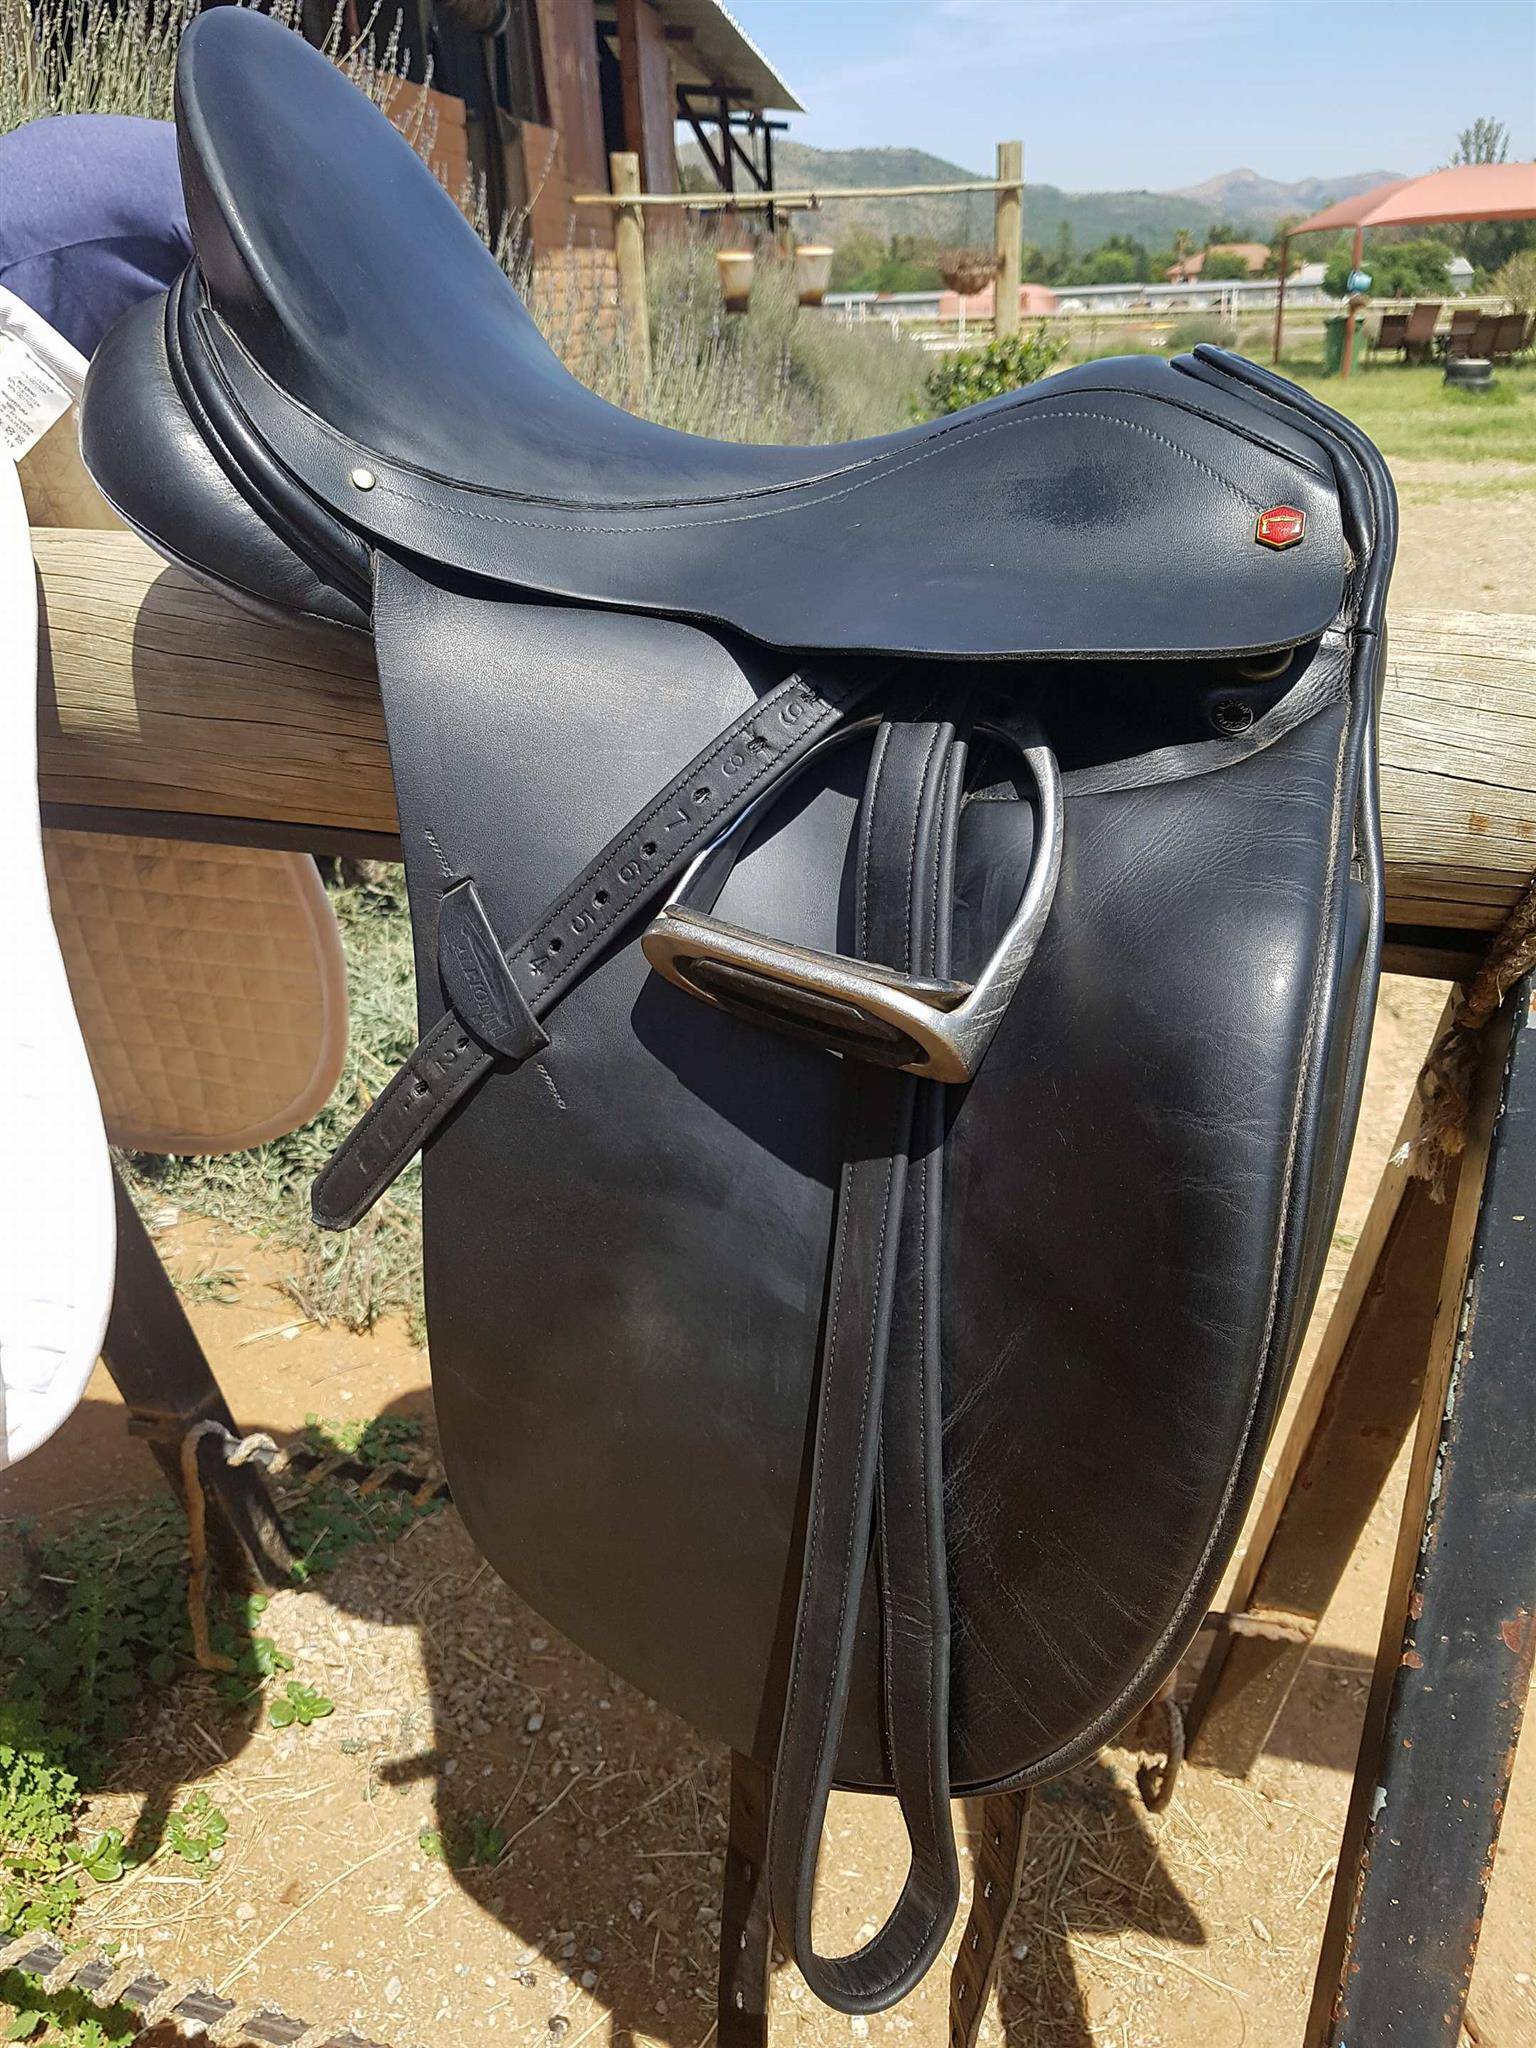 For sale: Albion 17 Inch SLK Dressage saddle in amazing condition. Fitted